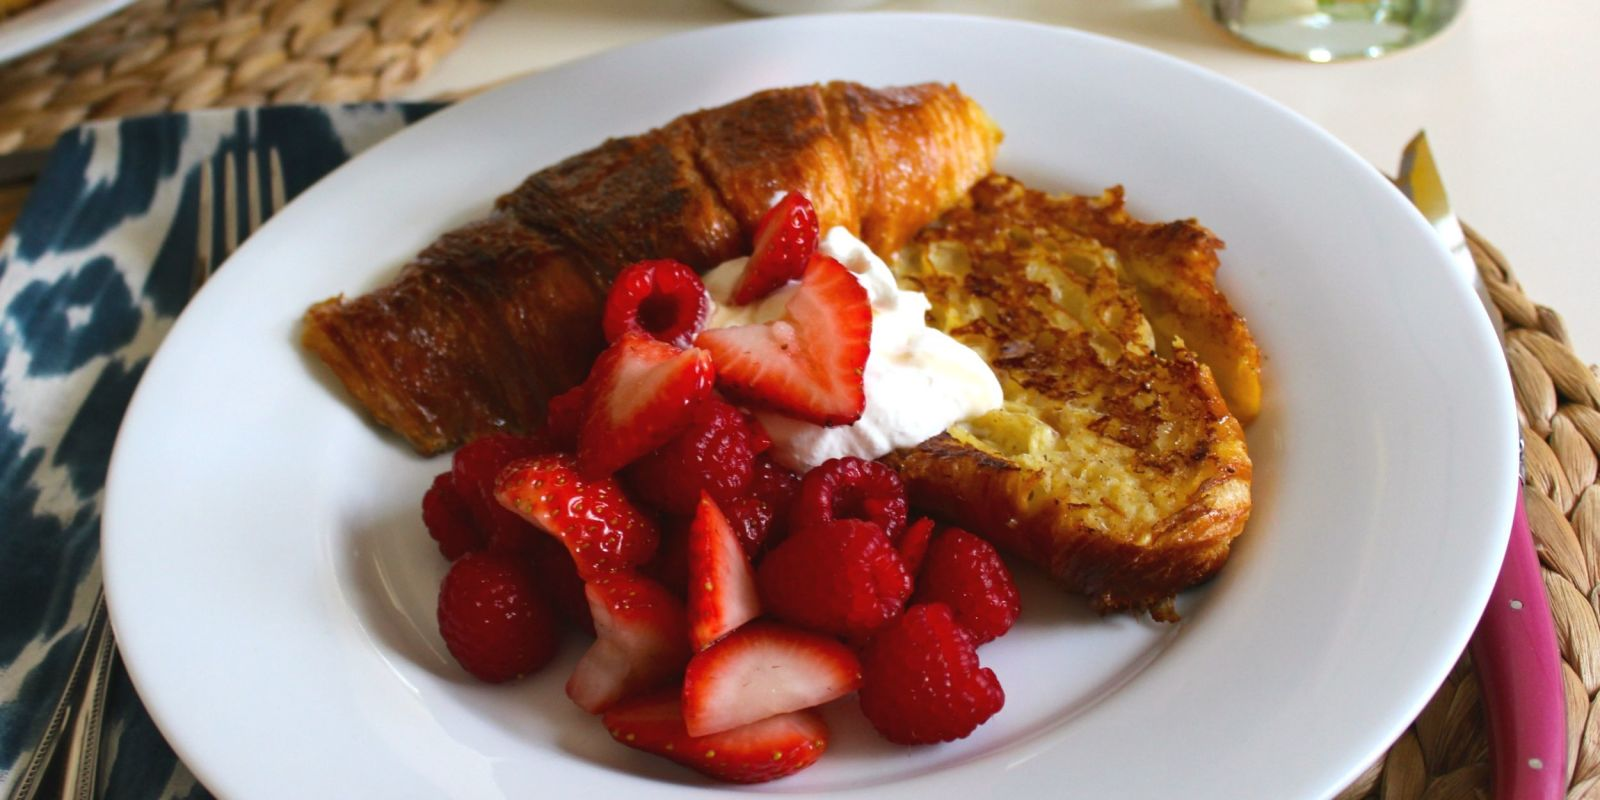 Croissant French Toast  How To Make Croissant French Toast  Delish